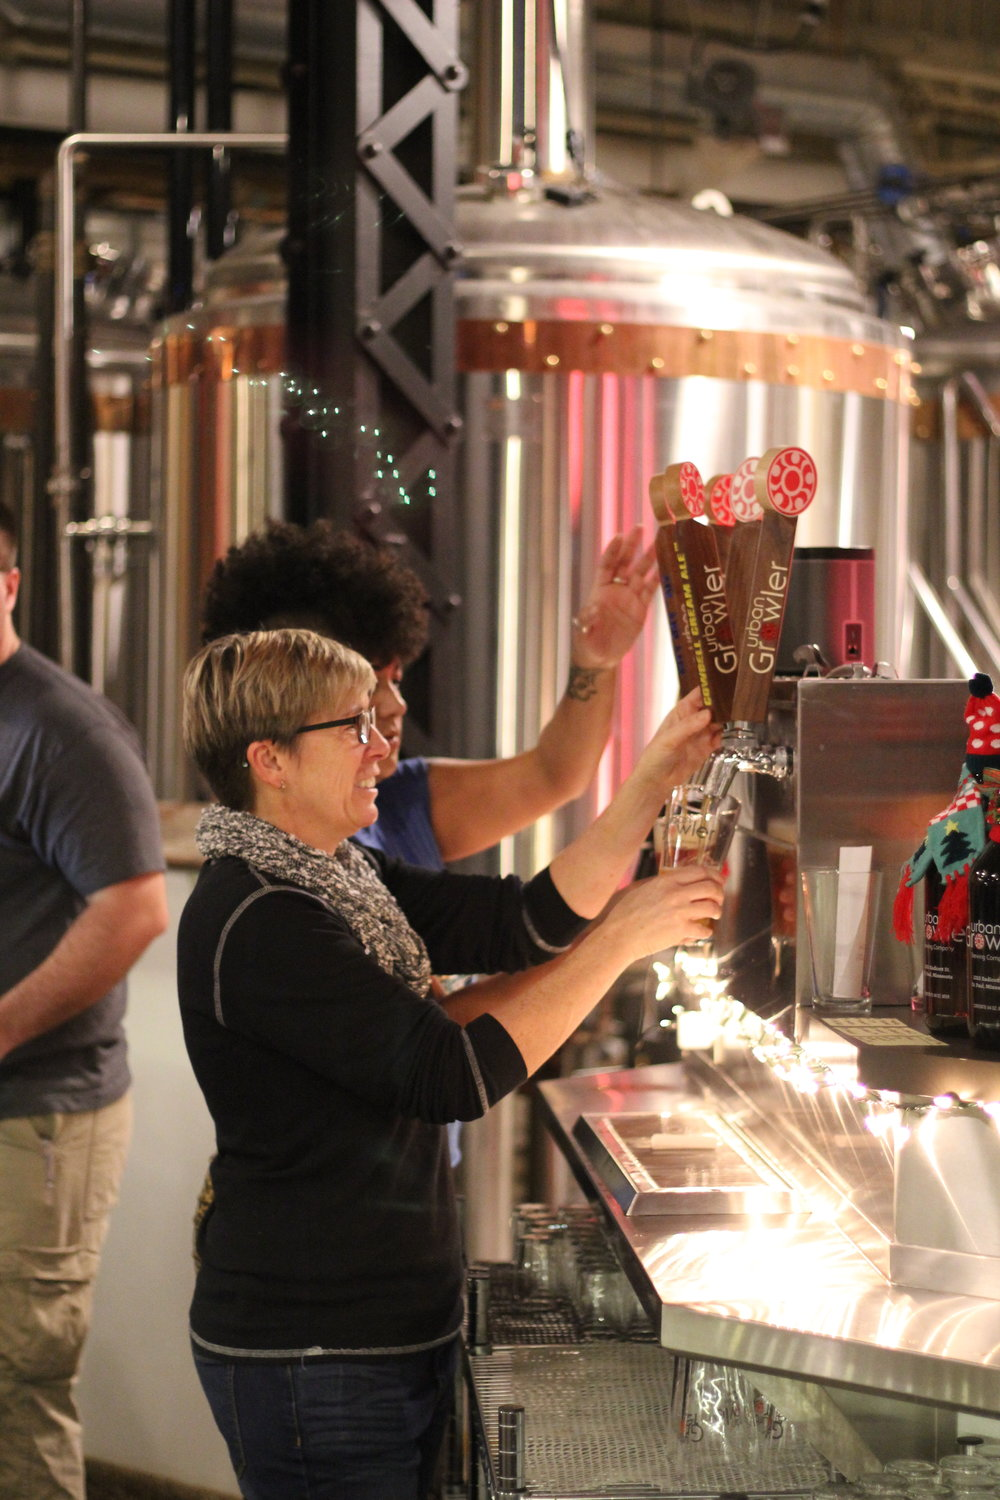 Jill Pavlak, co-owner of Urban Growler, pouring a Cream Ale